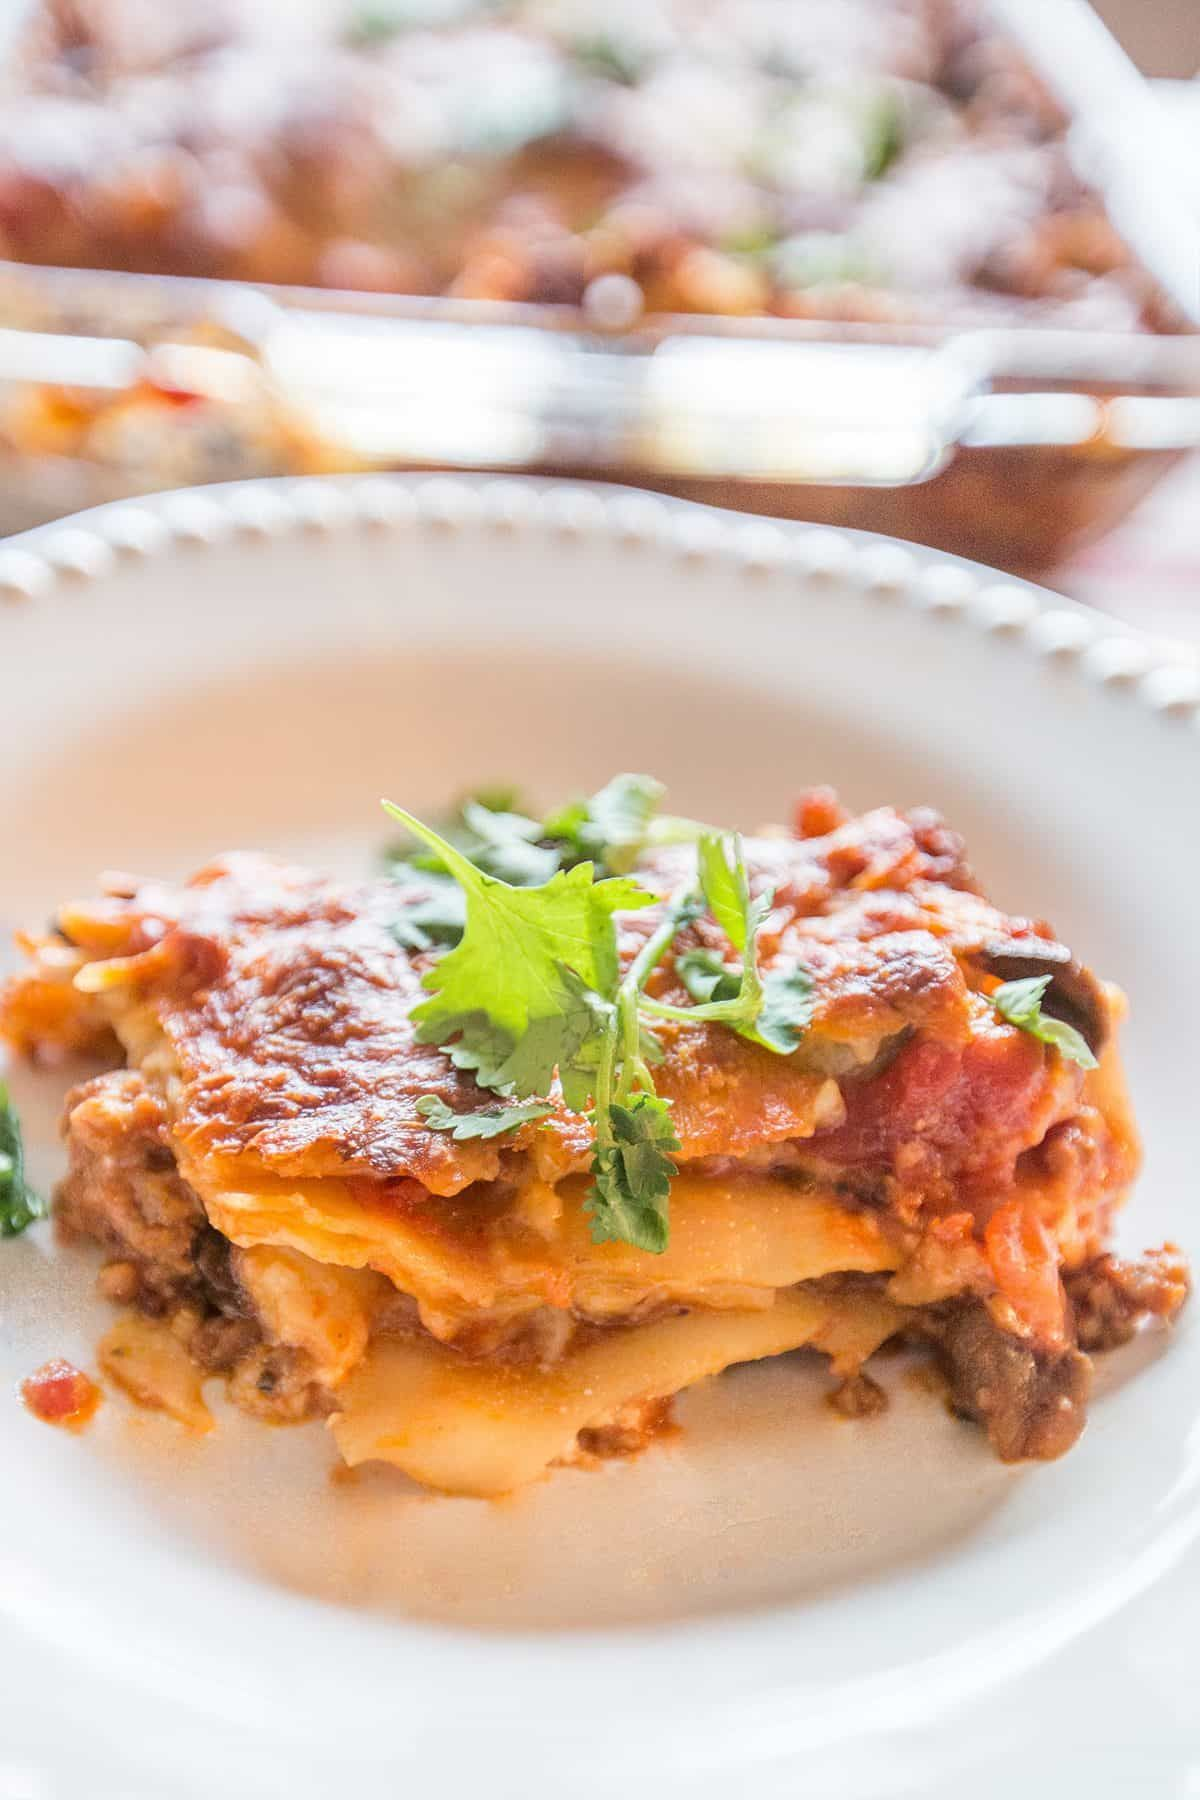 Cottage Cheese Lasagna Our Familys Secret To Delicious Addictive Lasagna Lasagna Cottage Cheese Cheese Lasagna